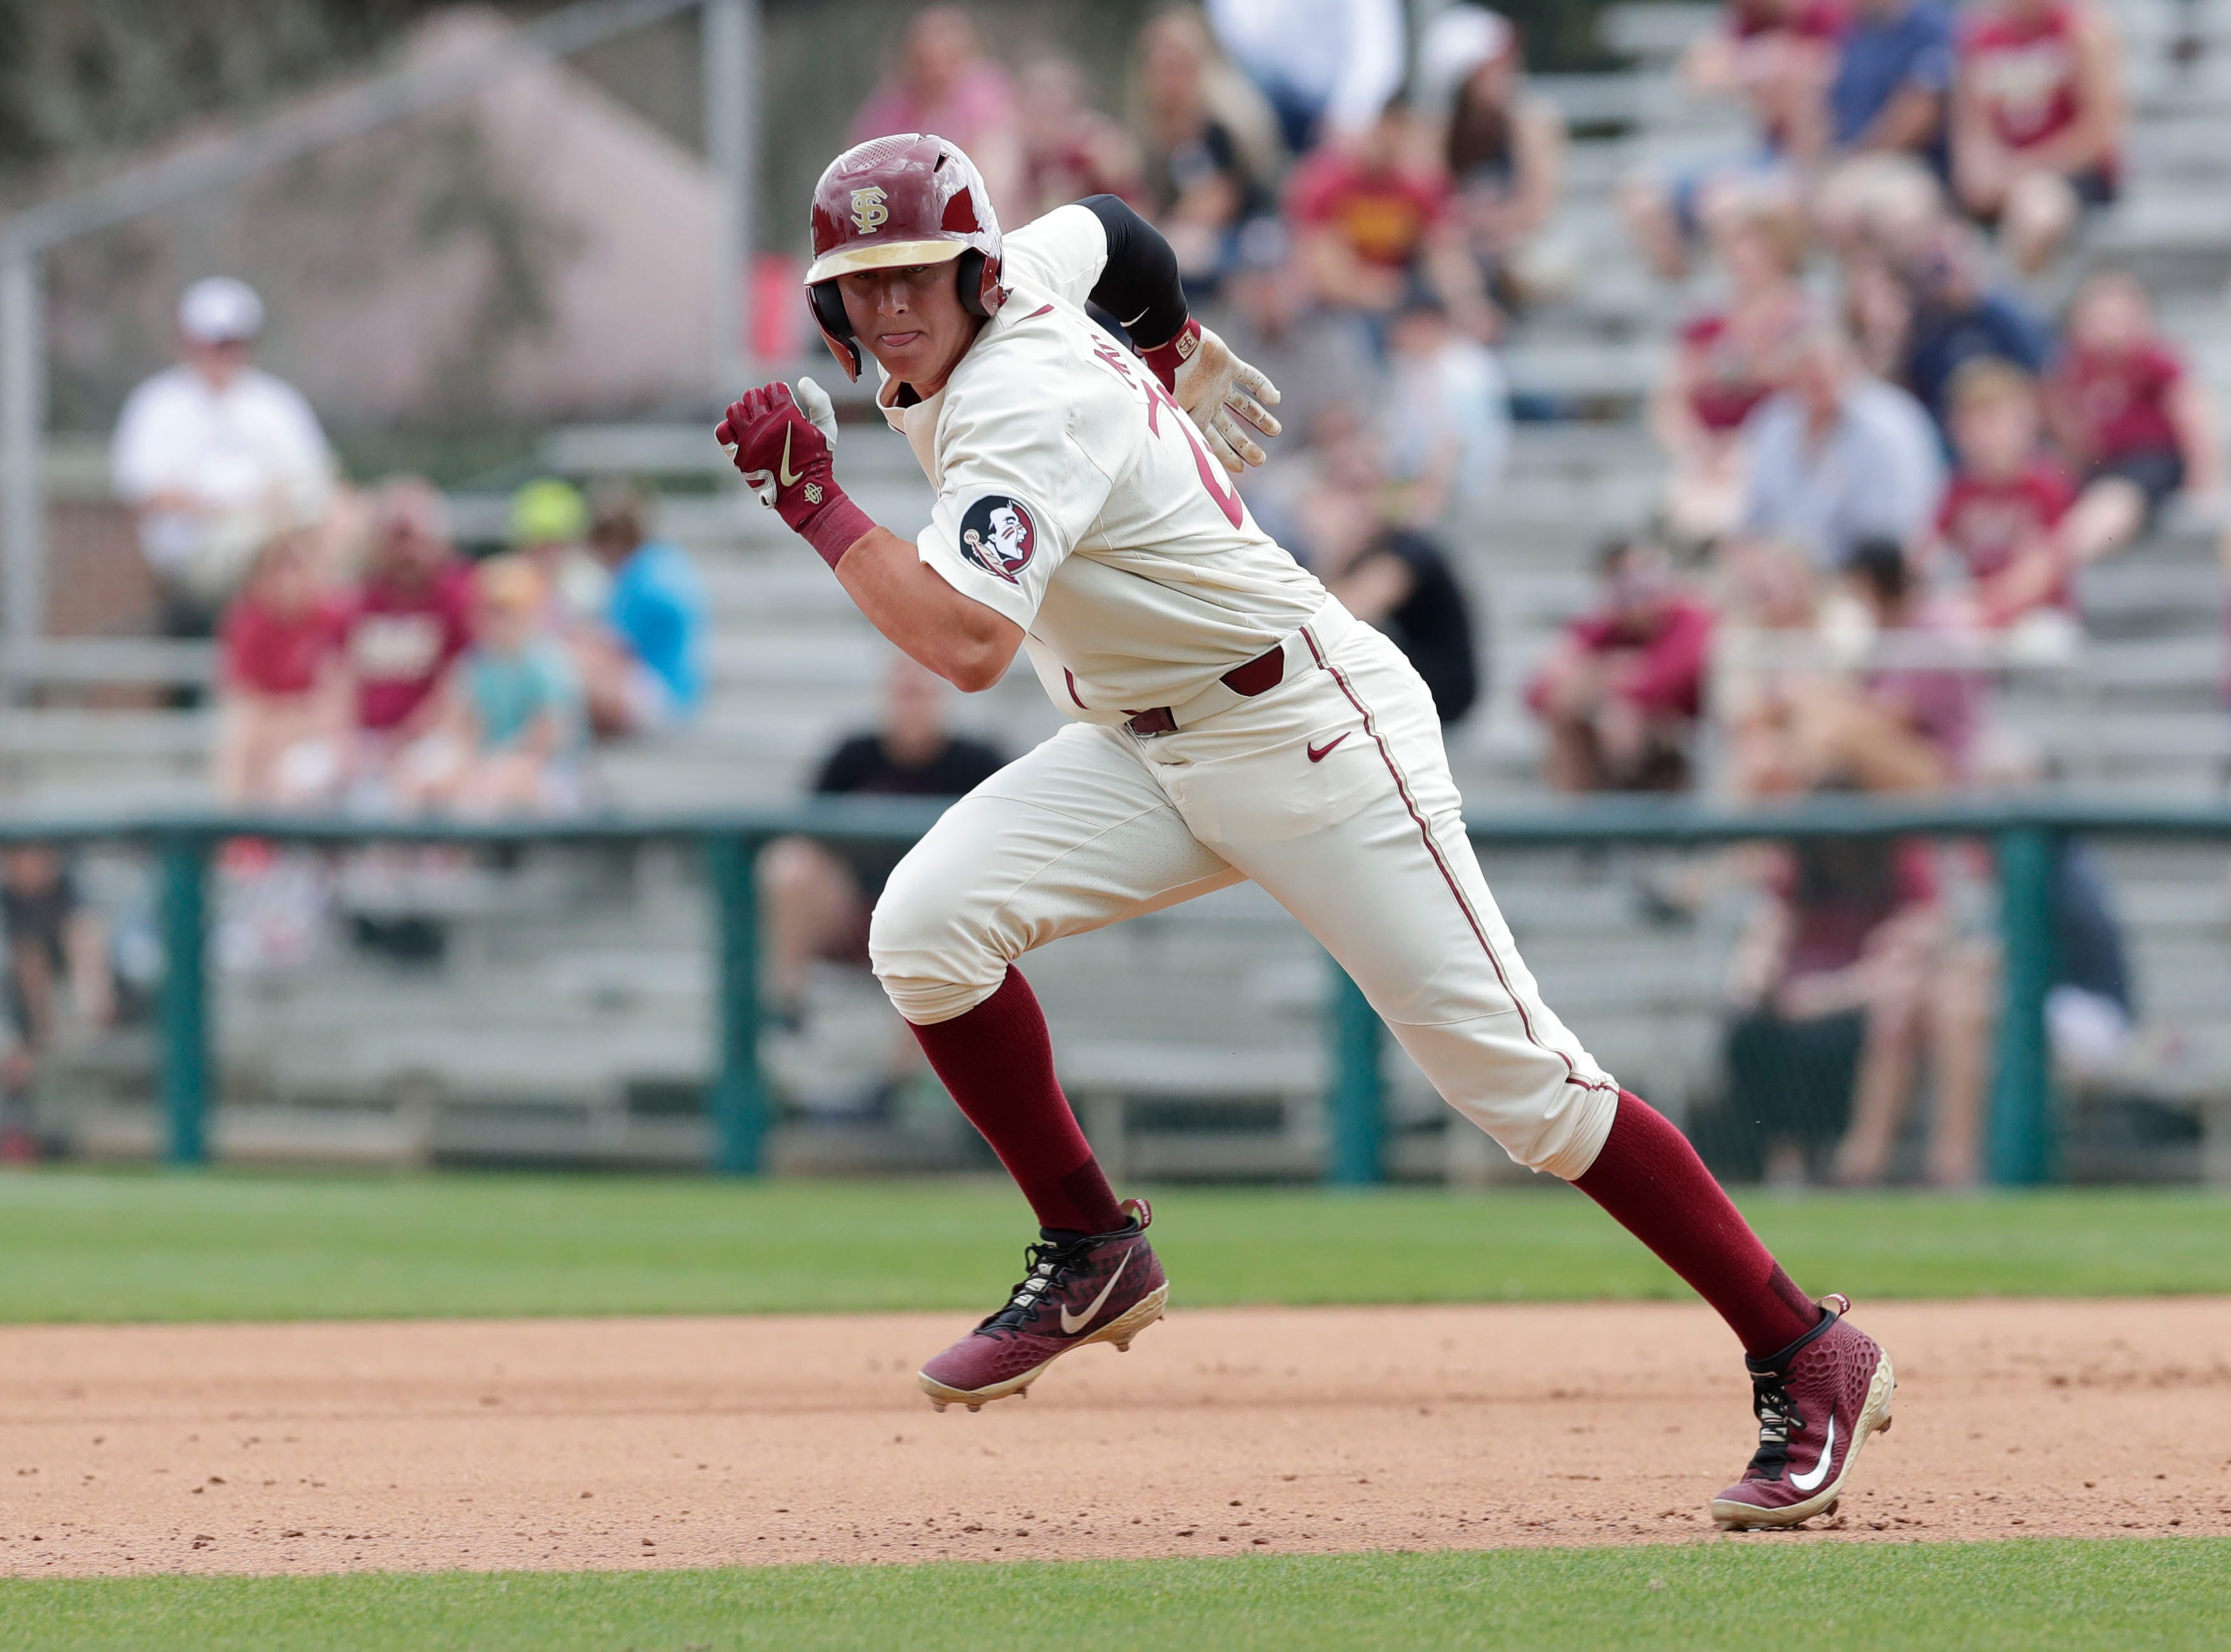 Florida State Seminoles outfielder Robby Martin (26) runs to second as the Florida State Seminoles host the Maine Black Bears for the second game of the series, Saturday Feb. 16, 2019.